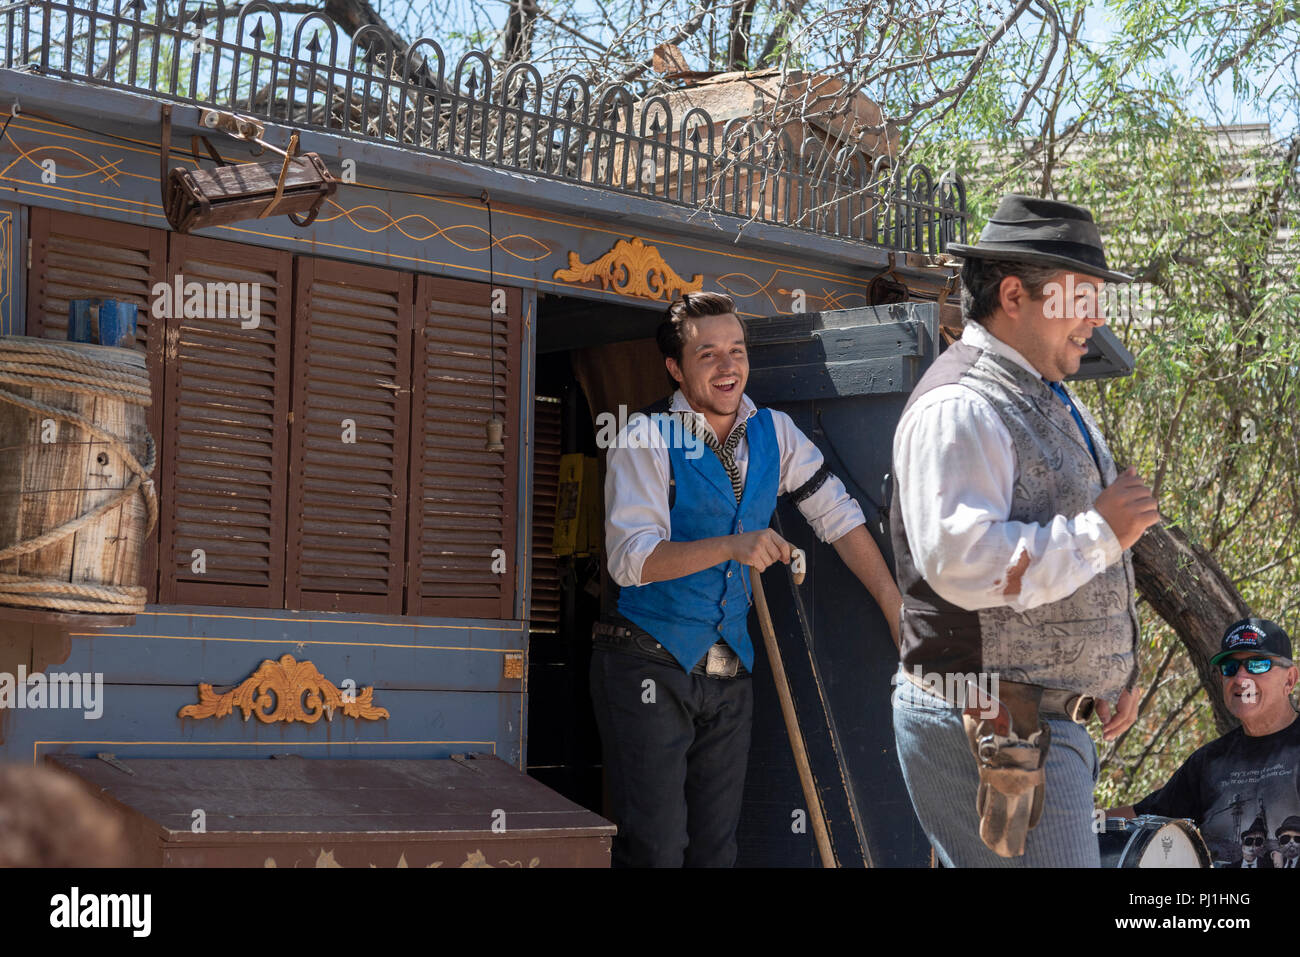 Western style dressed actors on stage with medicine wagon, one holding a cane. - Stock Image